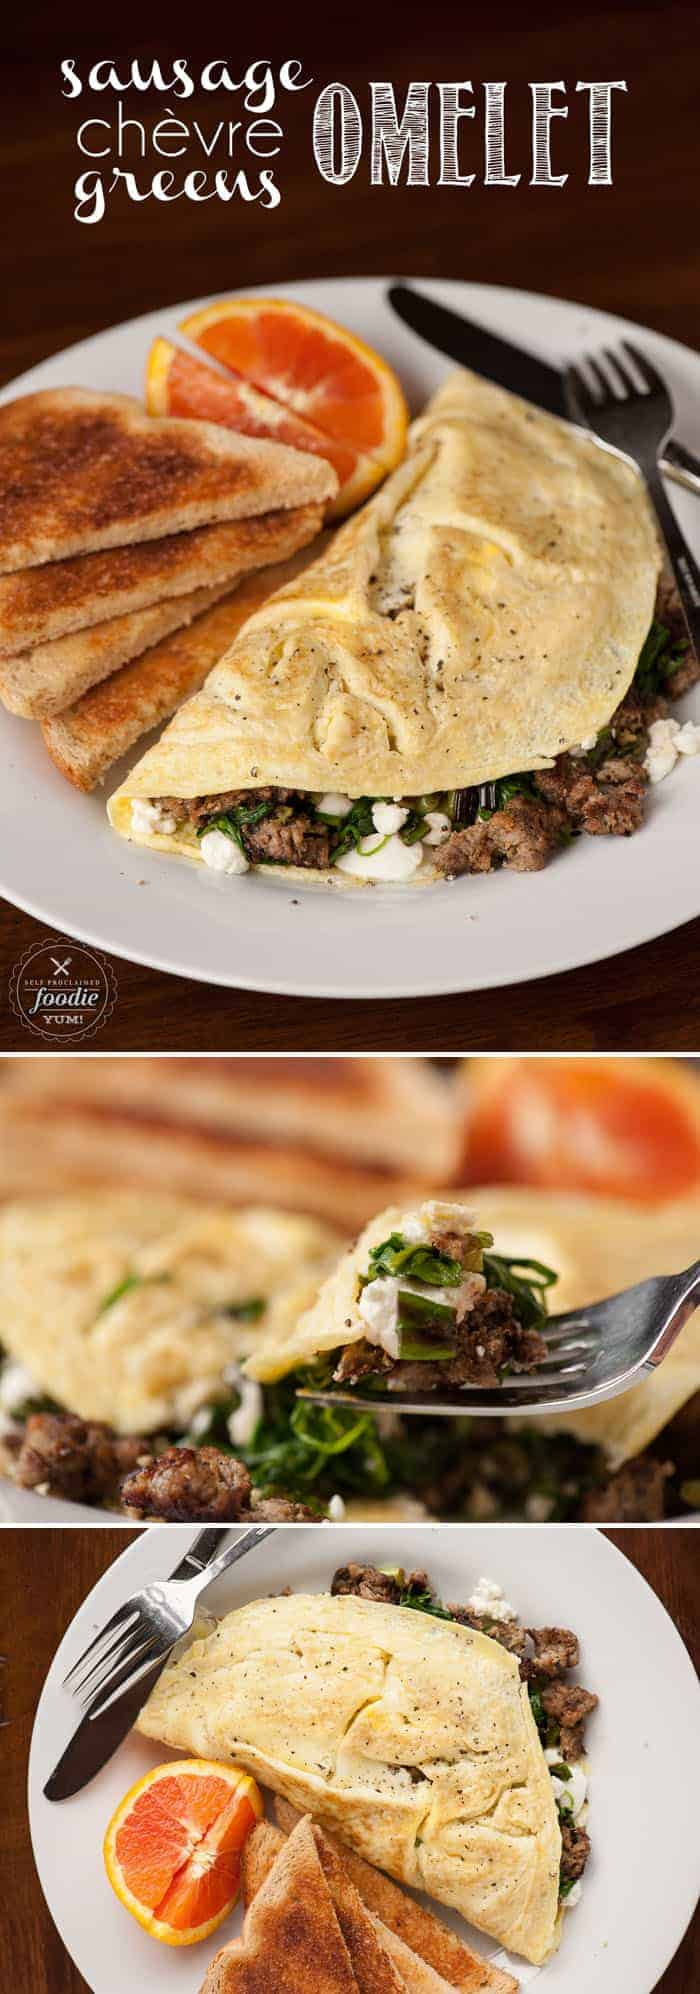 This Sausage Chèvre and Greens Omelet makes for a wonderful breakfast and has all the components you would want to start your morning right.